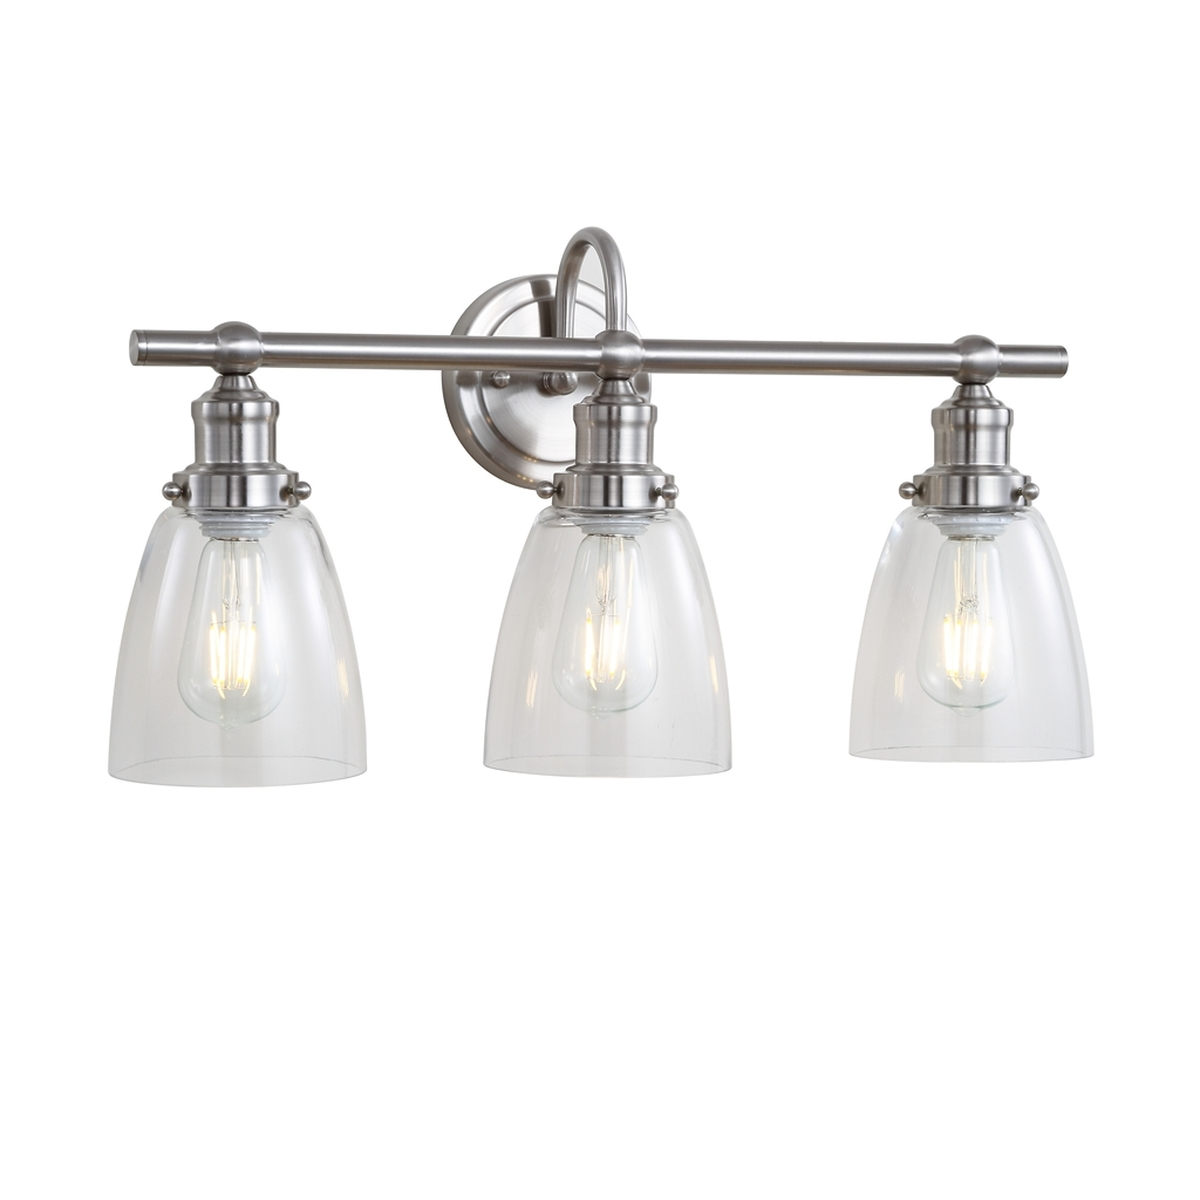 Scn4046a Sconces Lighting By Safavieh